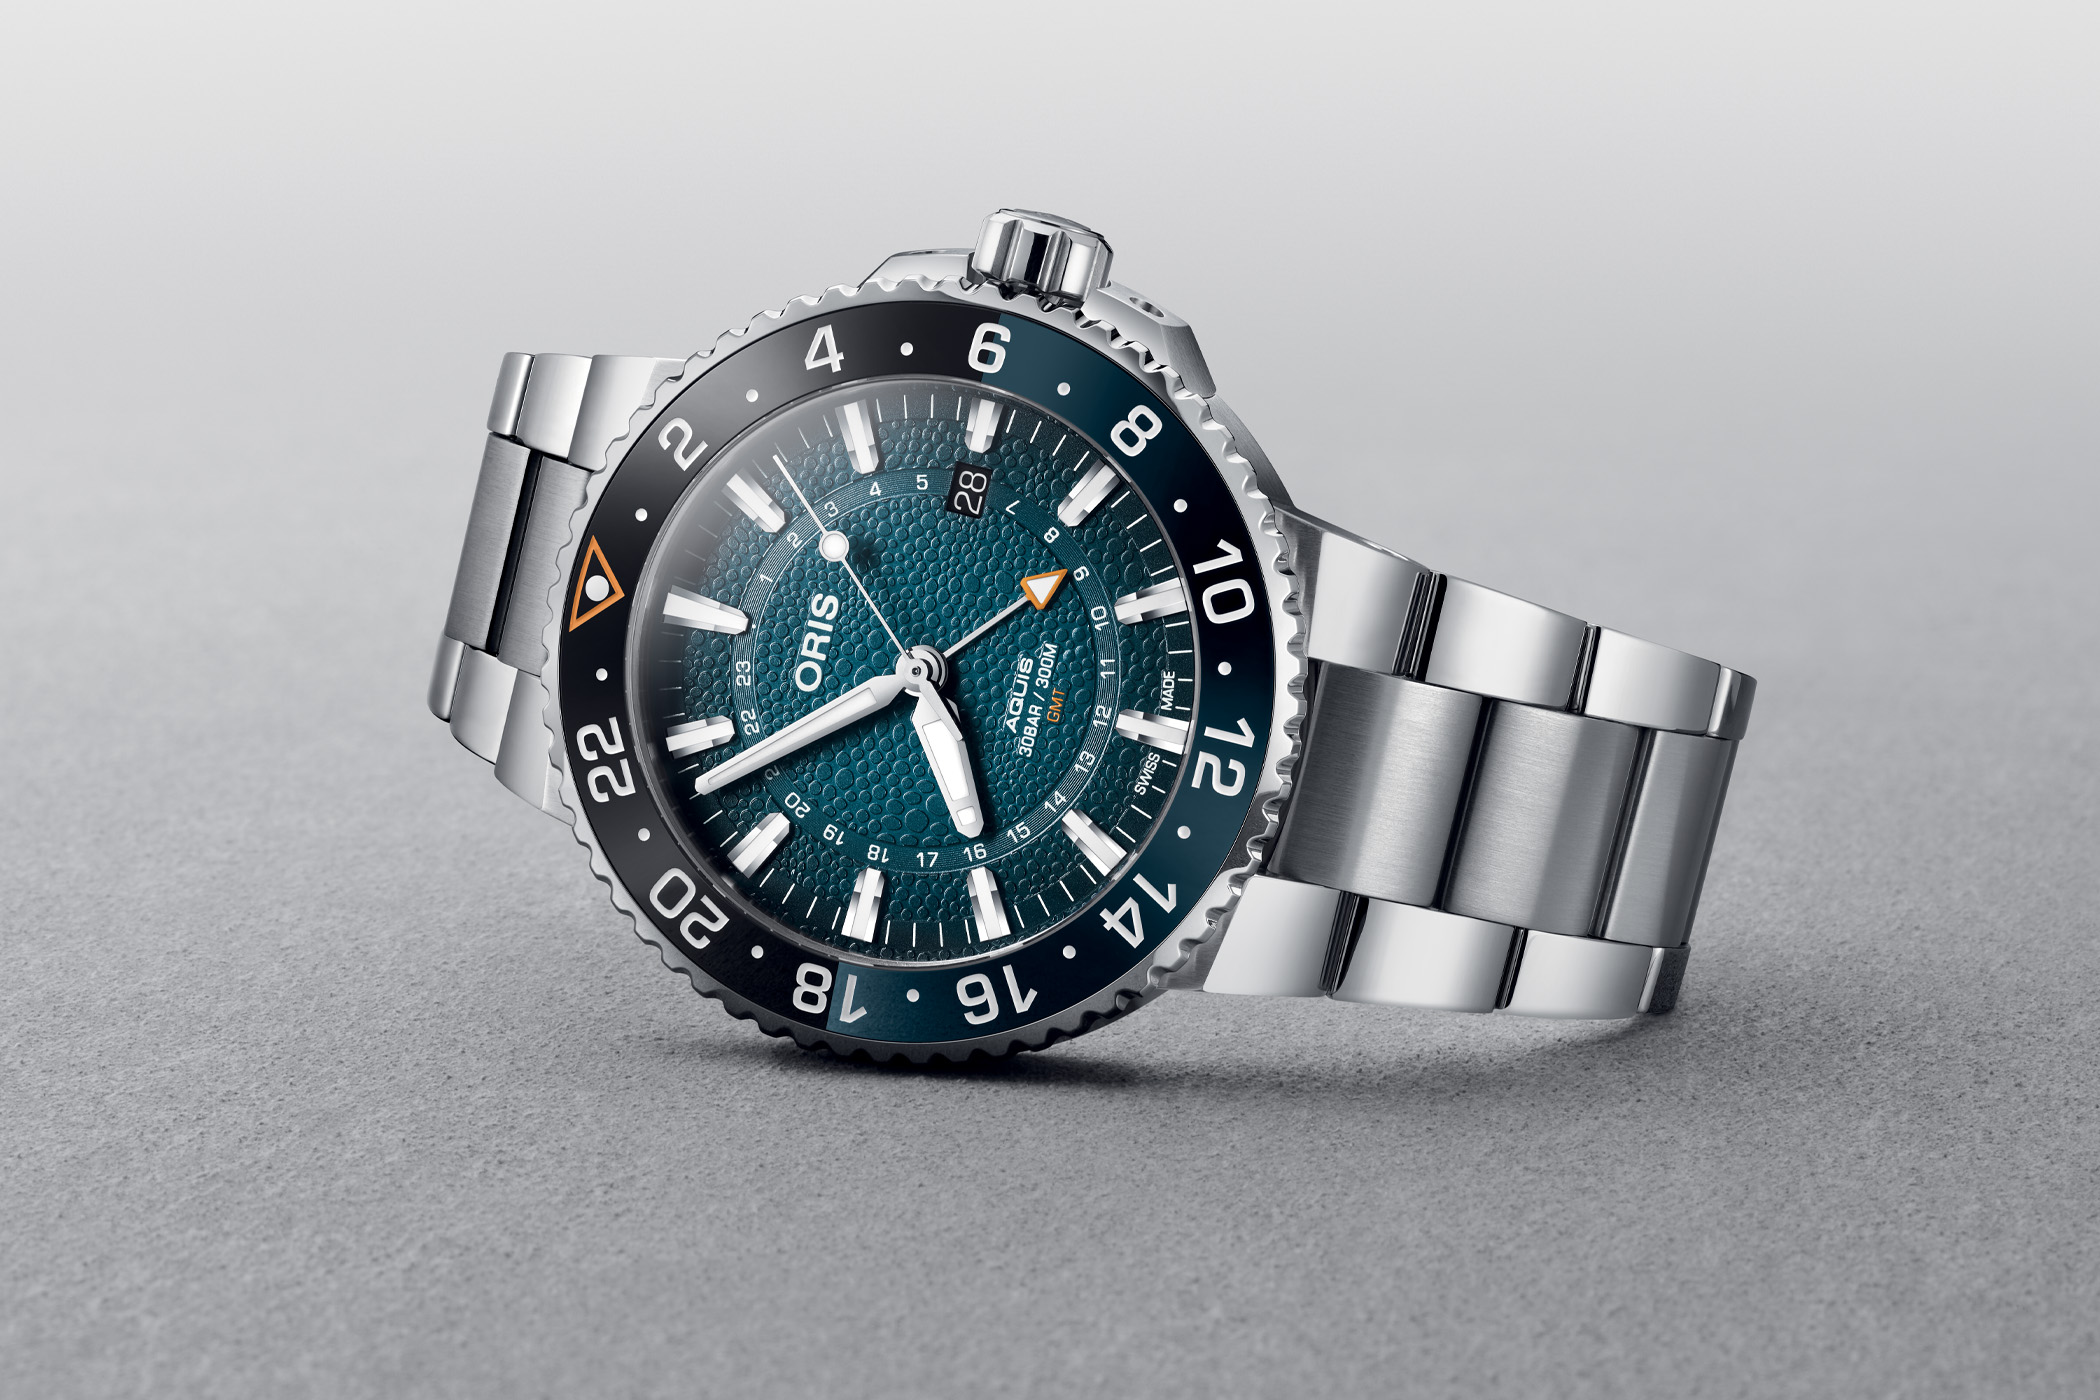 Oris Aquis GMT Date Whale Shark Limited Edition